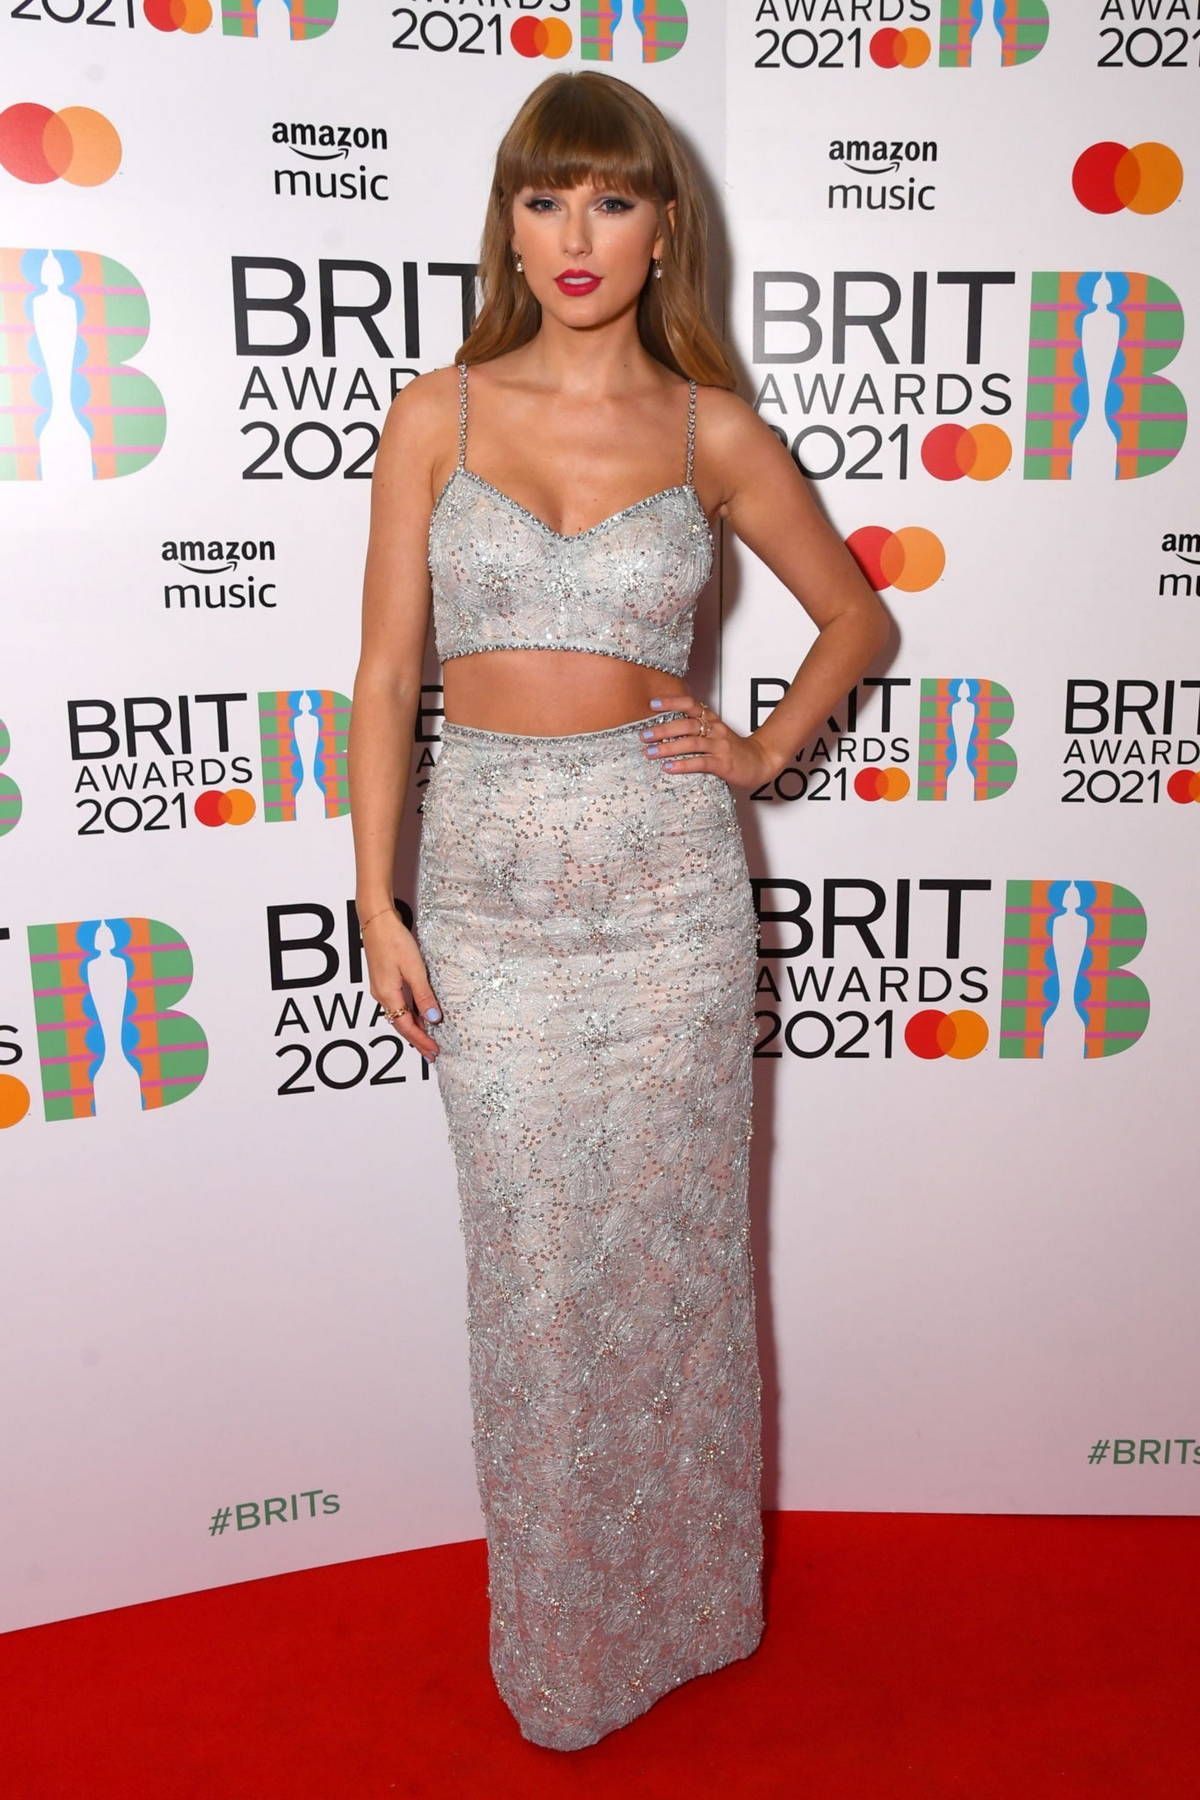 Taylor Swift attends The BRIT Awards 2021 at The O2 Arena in London, UK